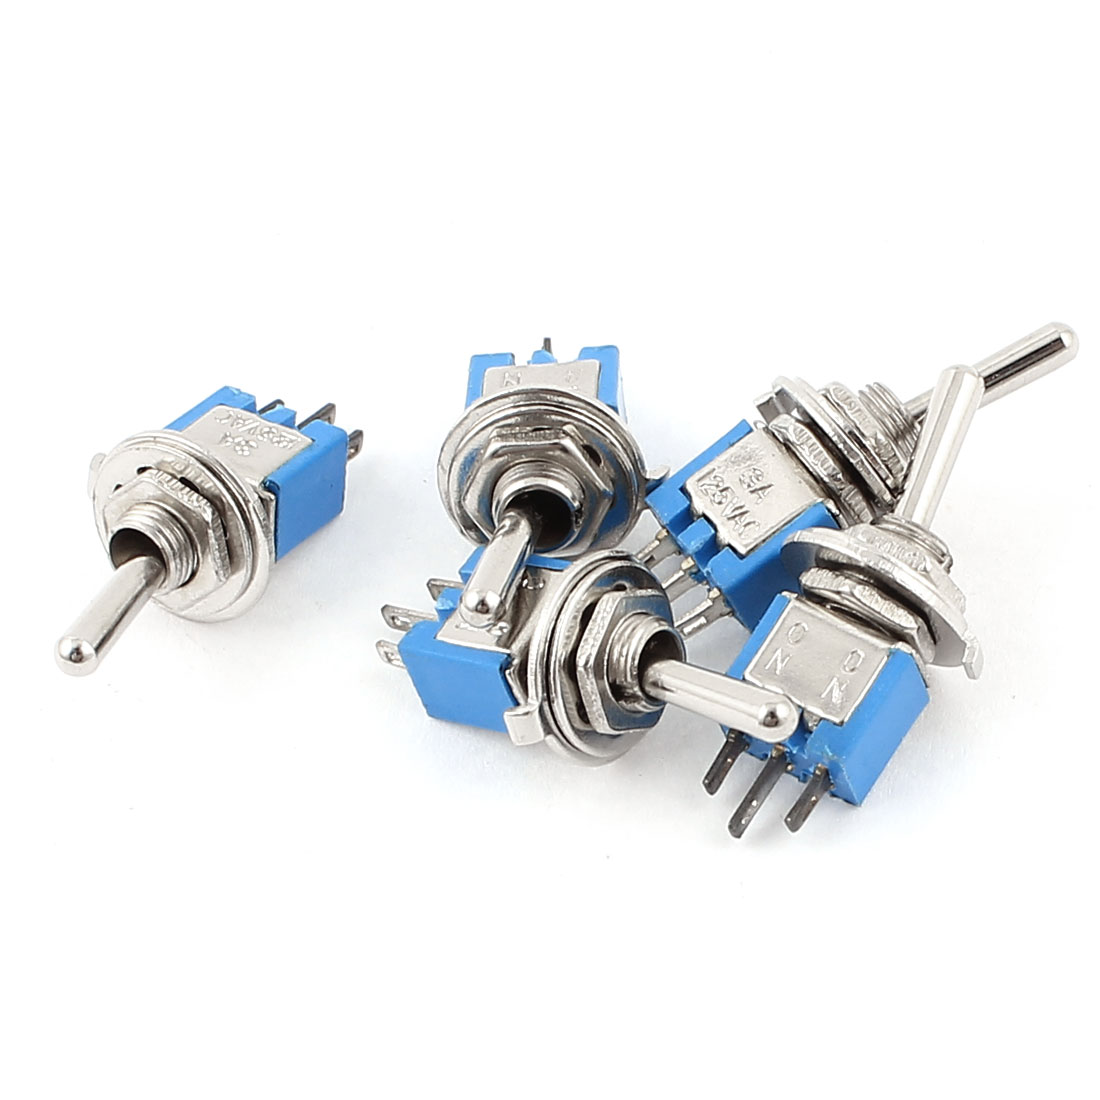 5Pcs AC 125V 3A On-On 5mm Panel Mount SPDT Latching Mini Toggle Switch Blue